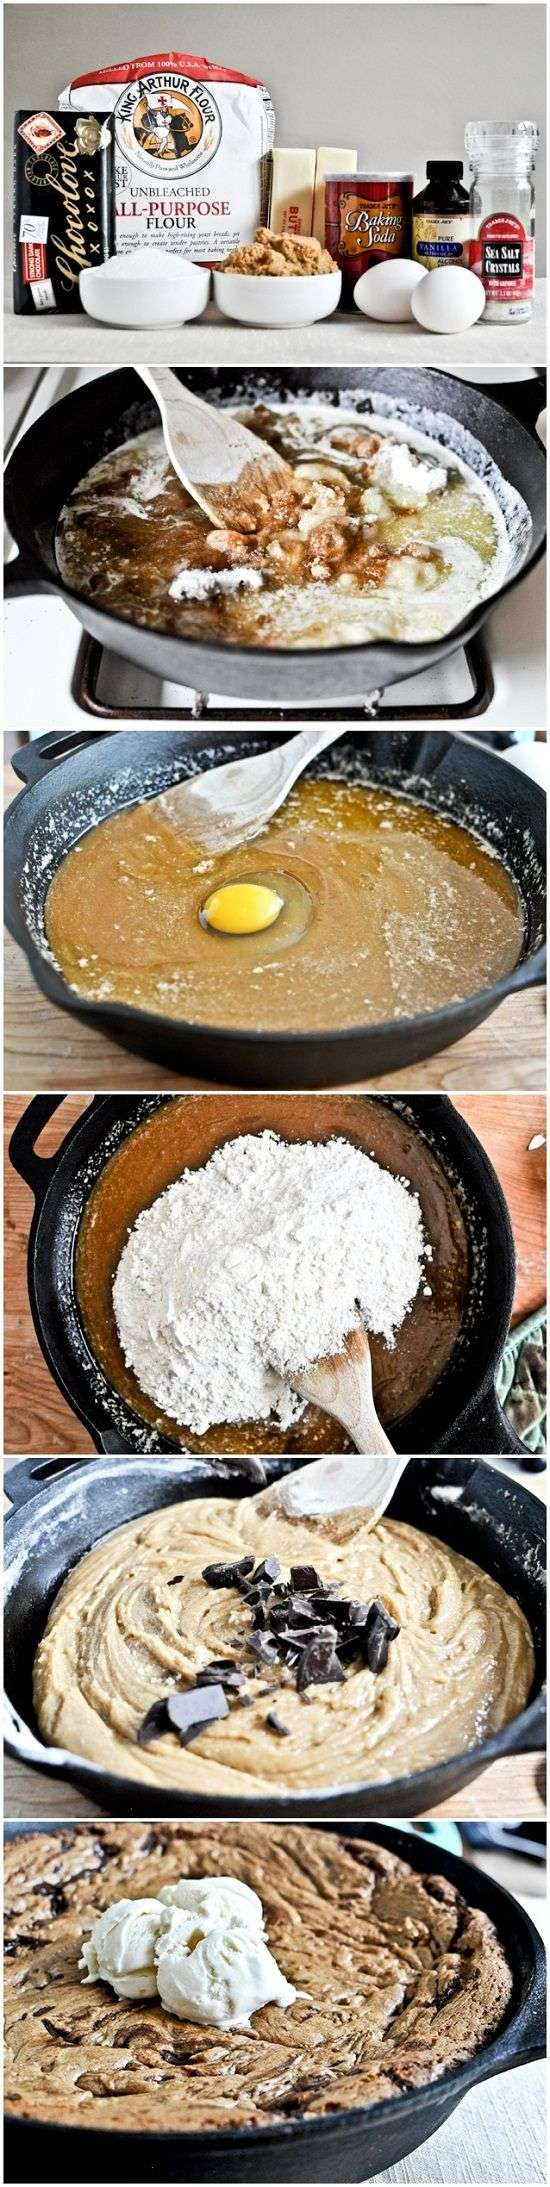 campfire-skillet-recipes